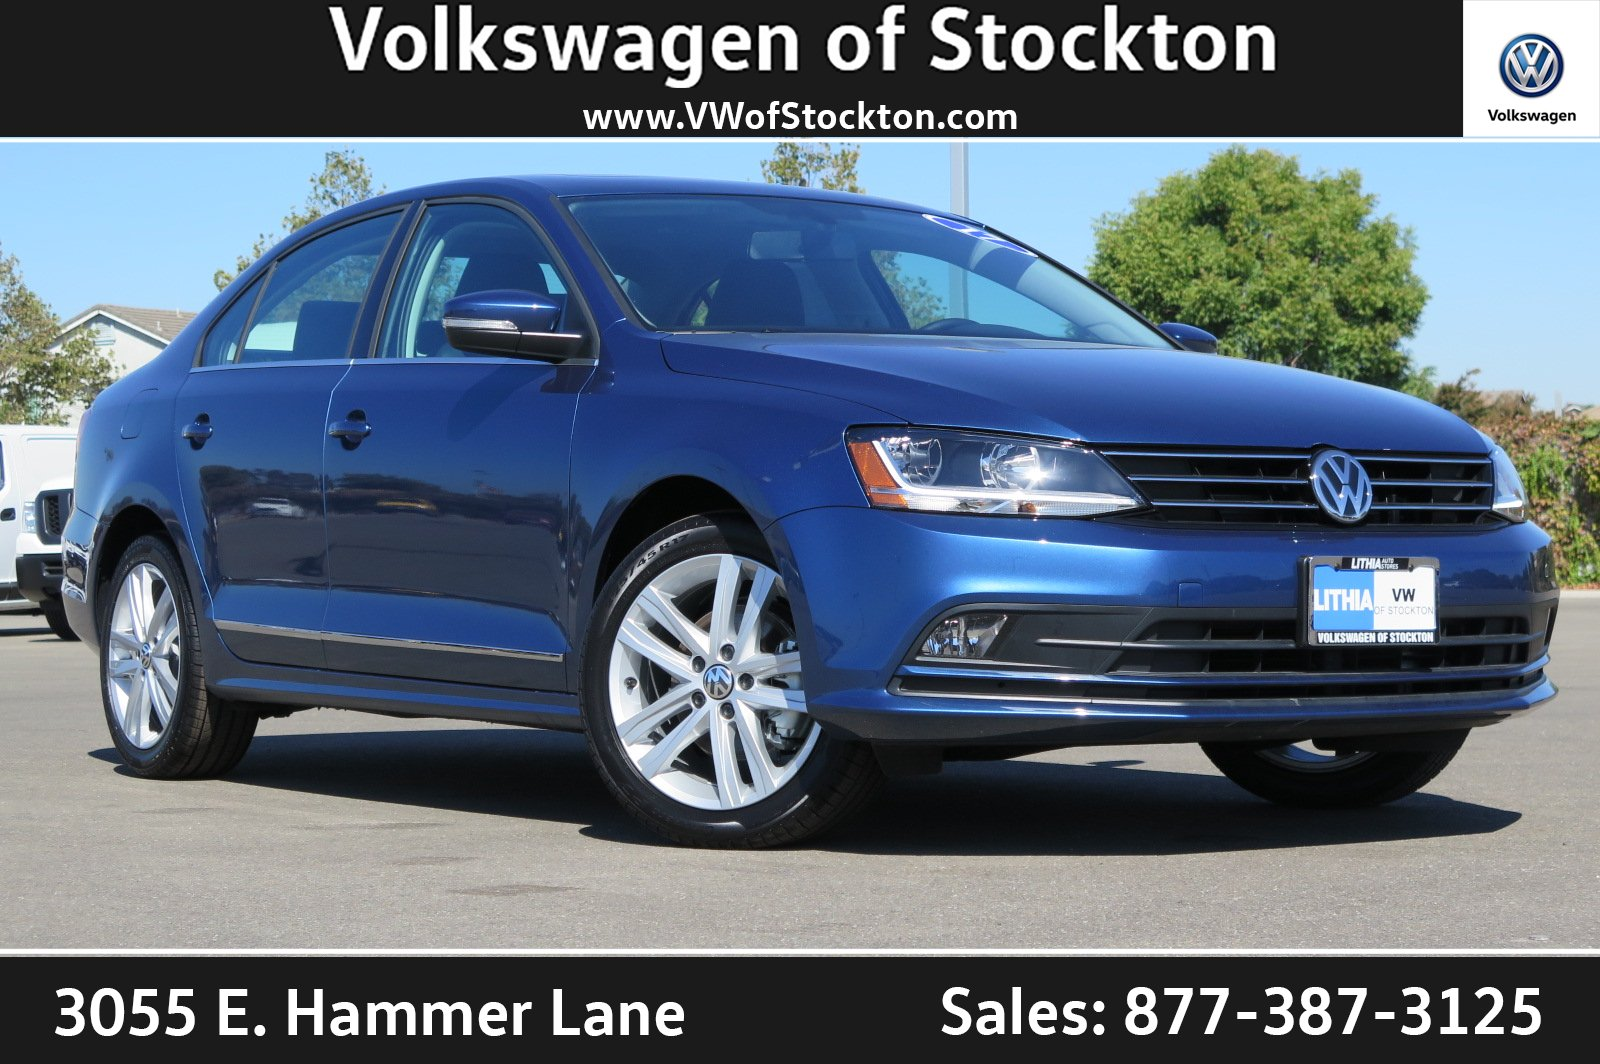 sale wolfsburg volkswagen edition for location stockton used edmunds img ca touareg in